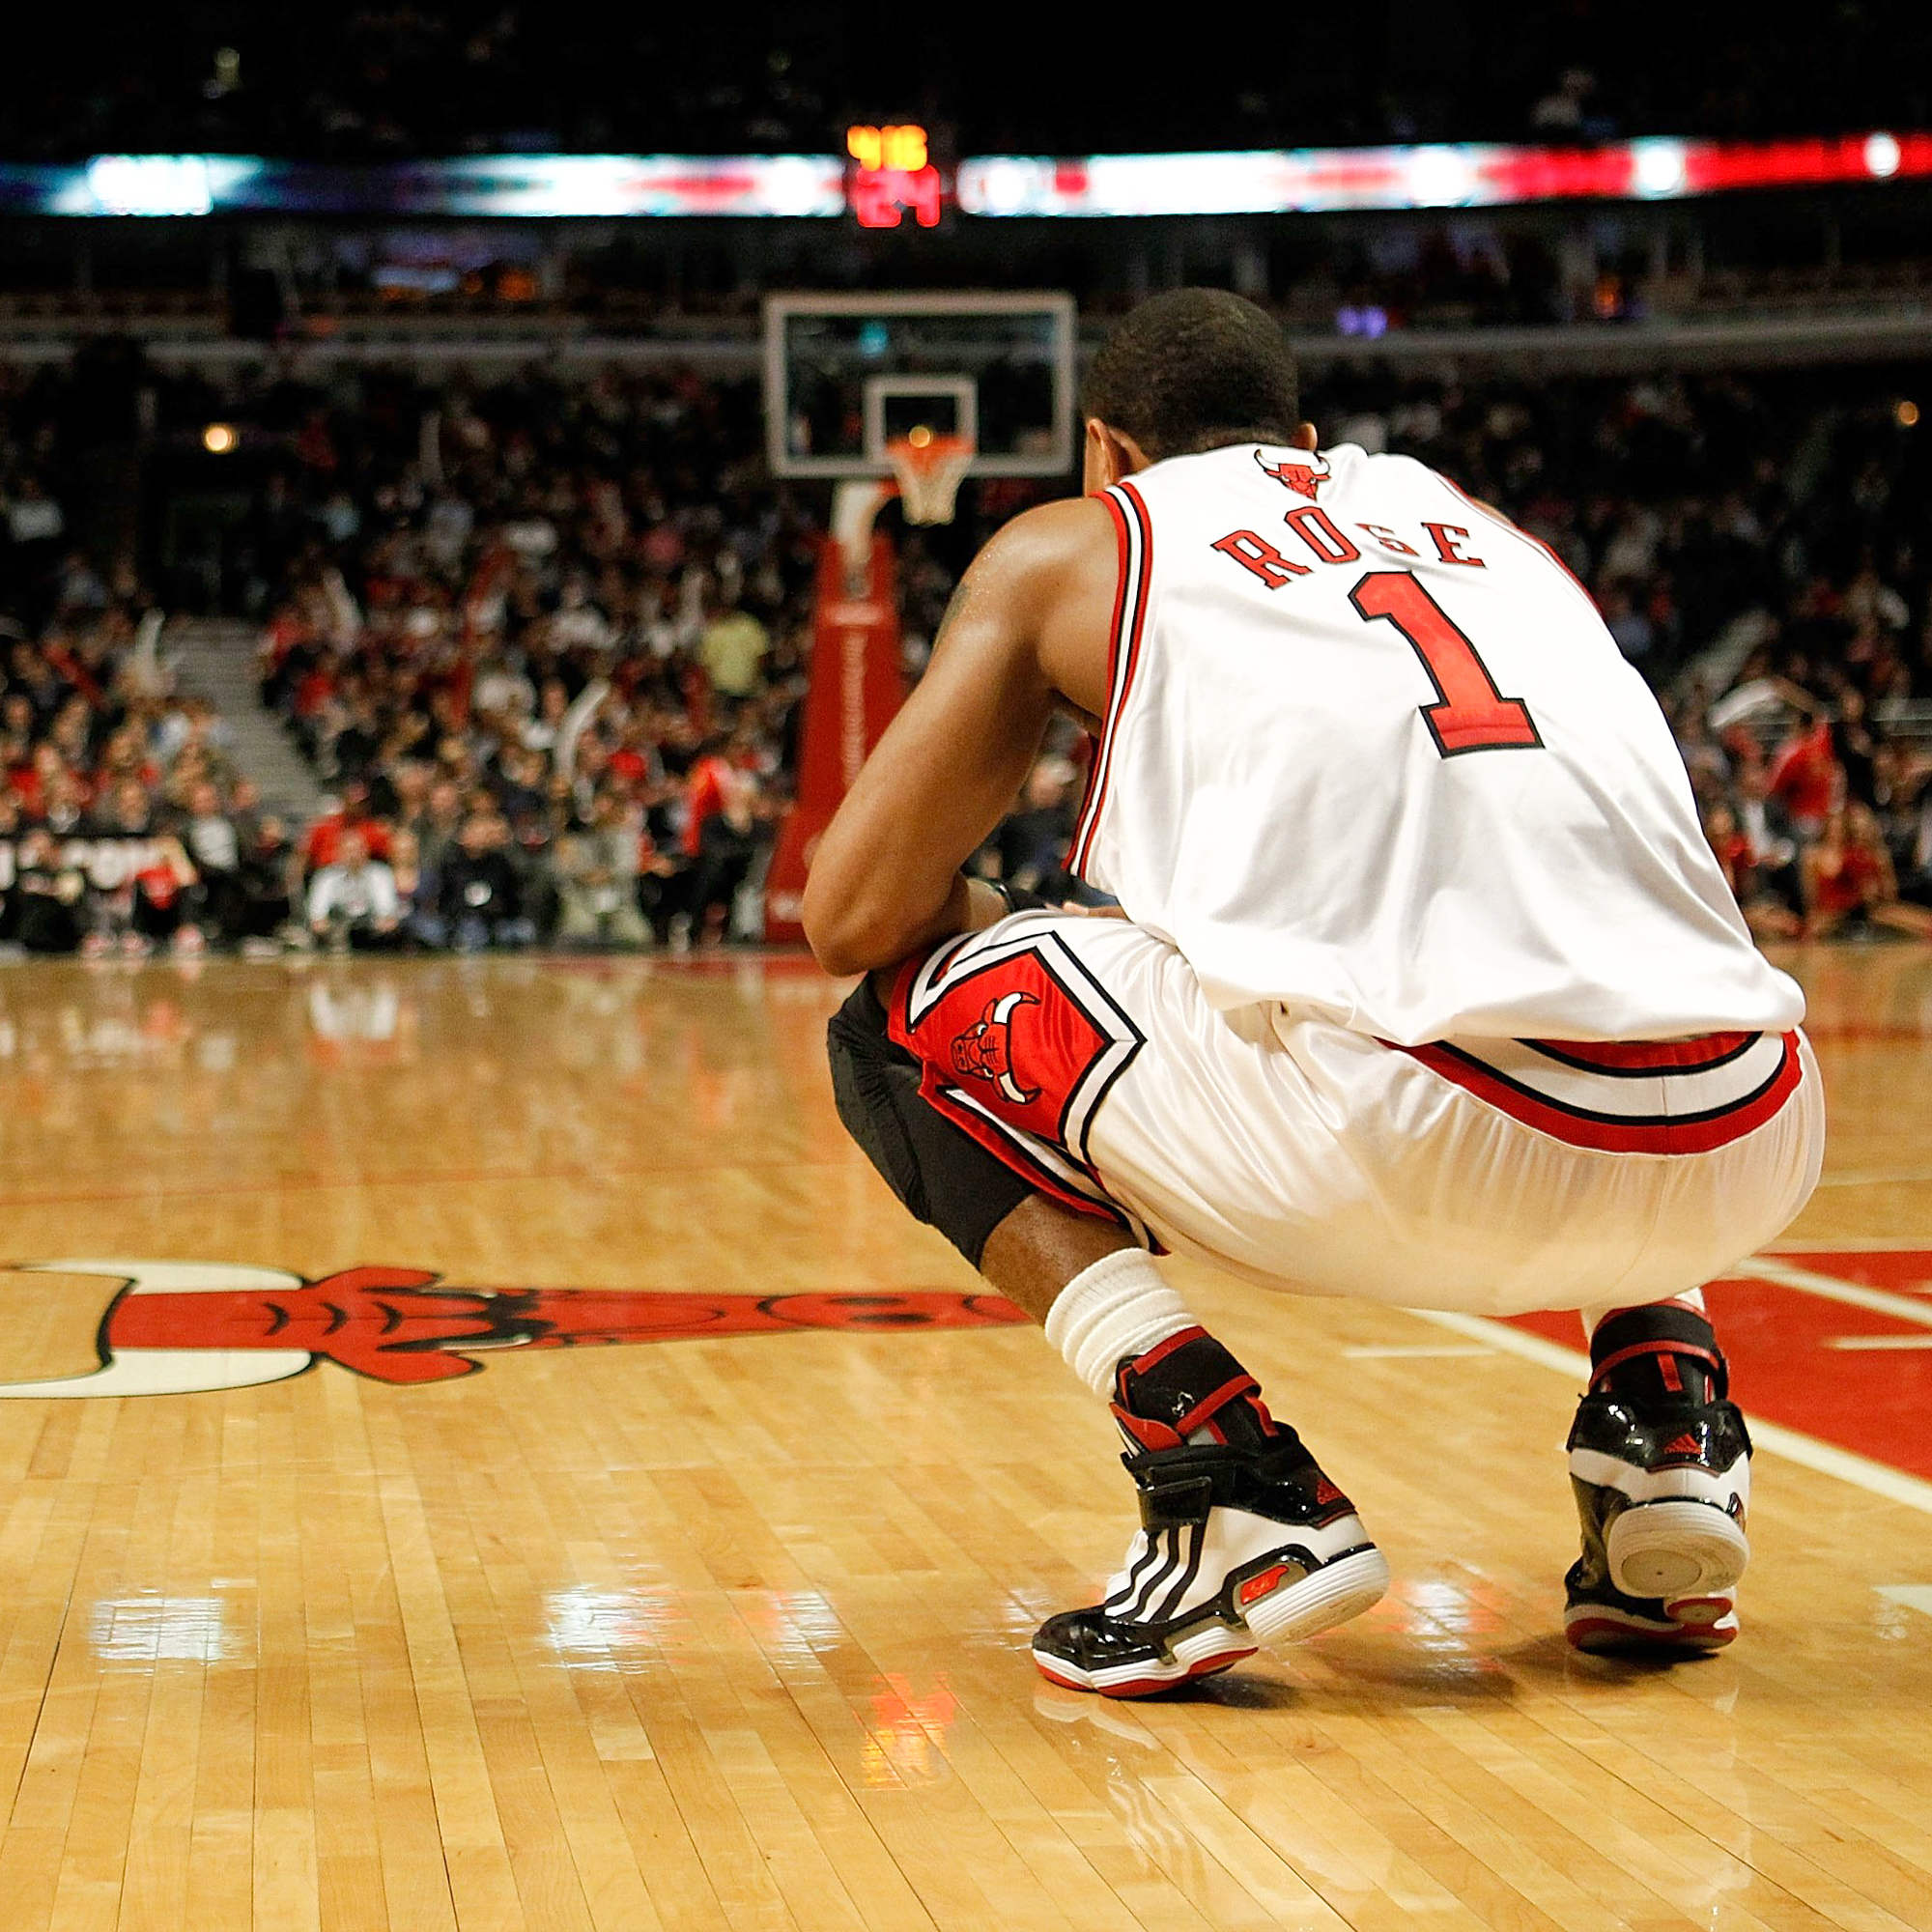 Derrick Rose during his time with the Chicago Bulls